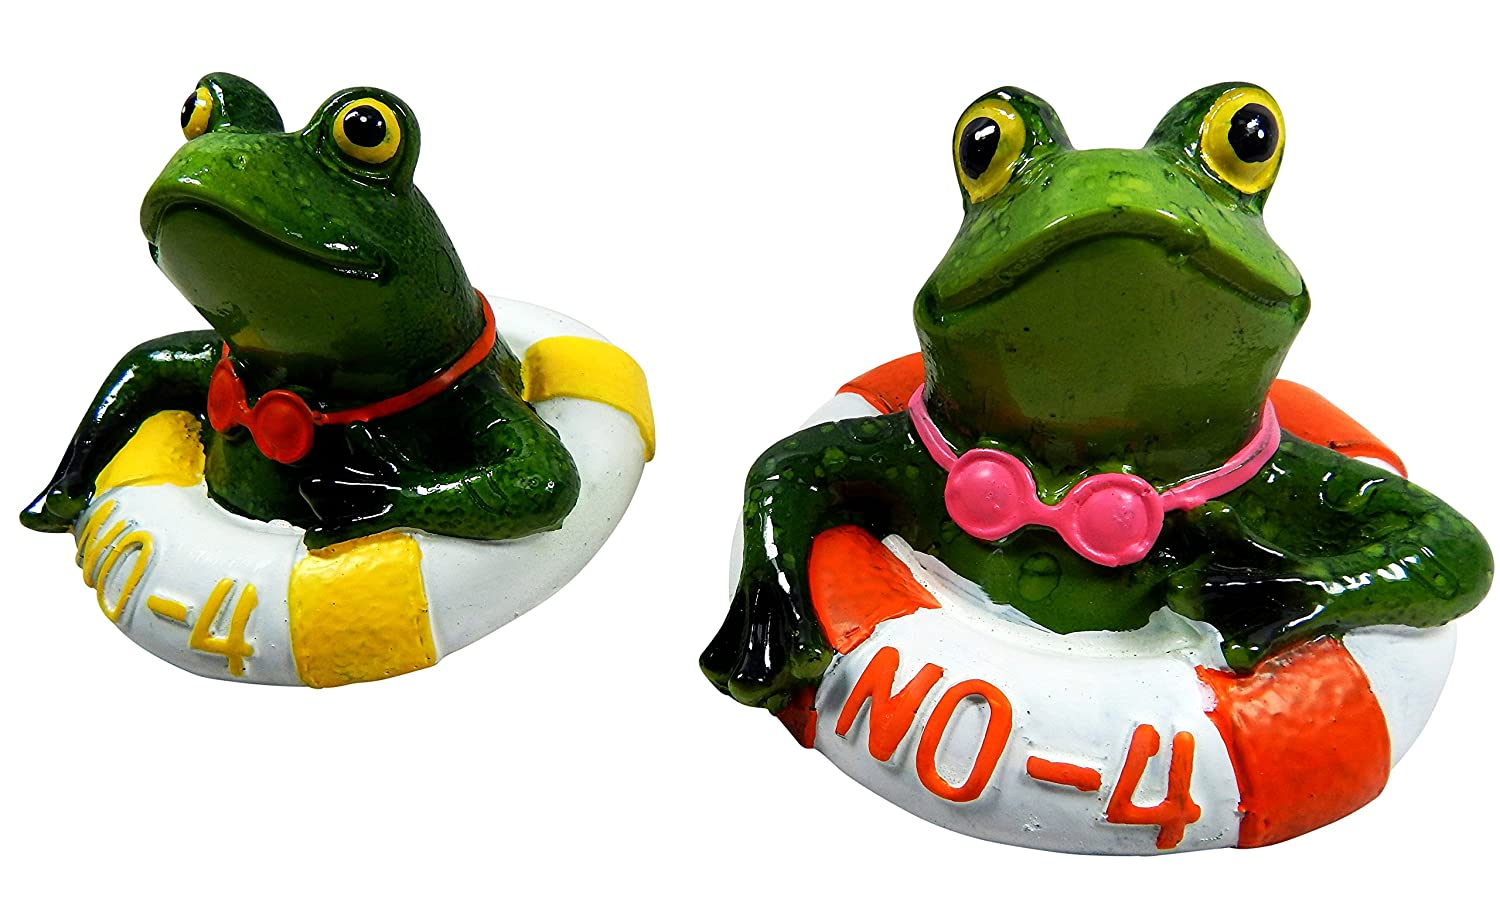 2 pcs. Swimming Toy Frog floating tire Yellow Orange Pool - Decoration Set for one price OotB